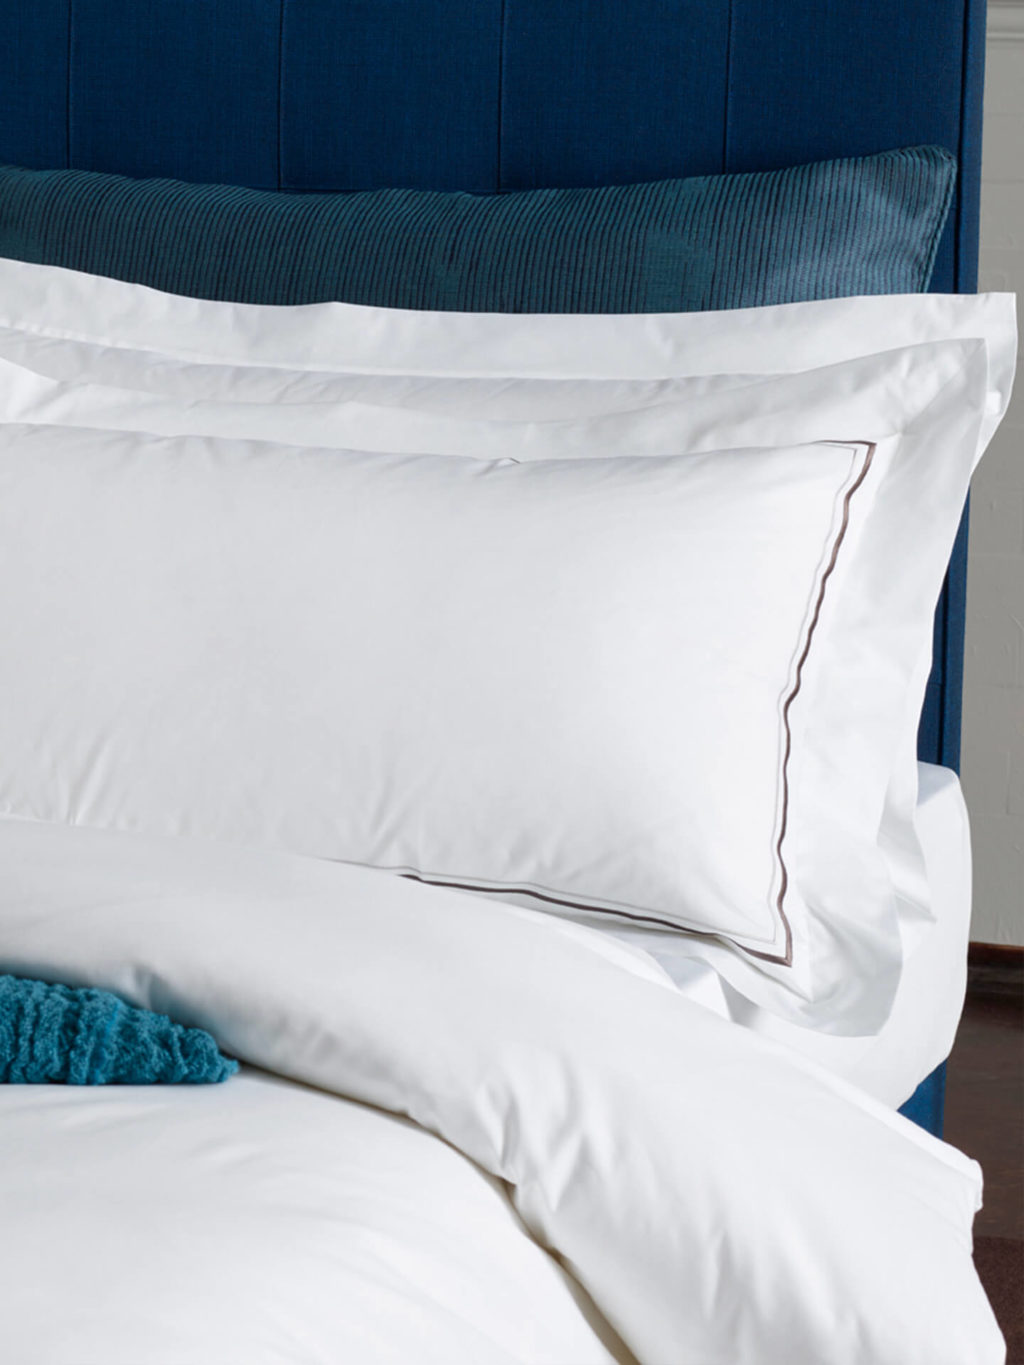 The Drift 500 Oxford pillow case